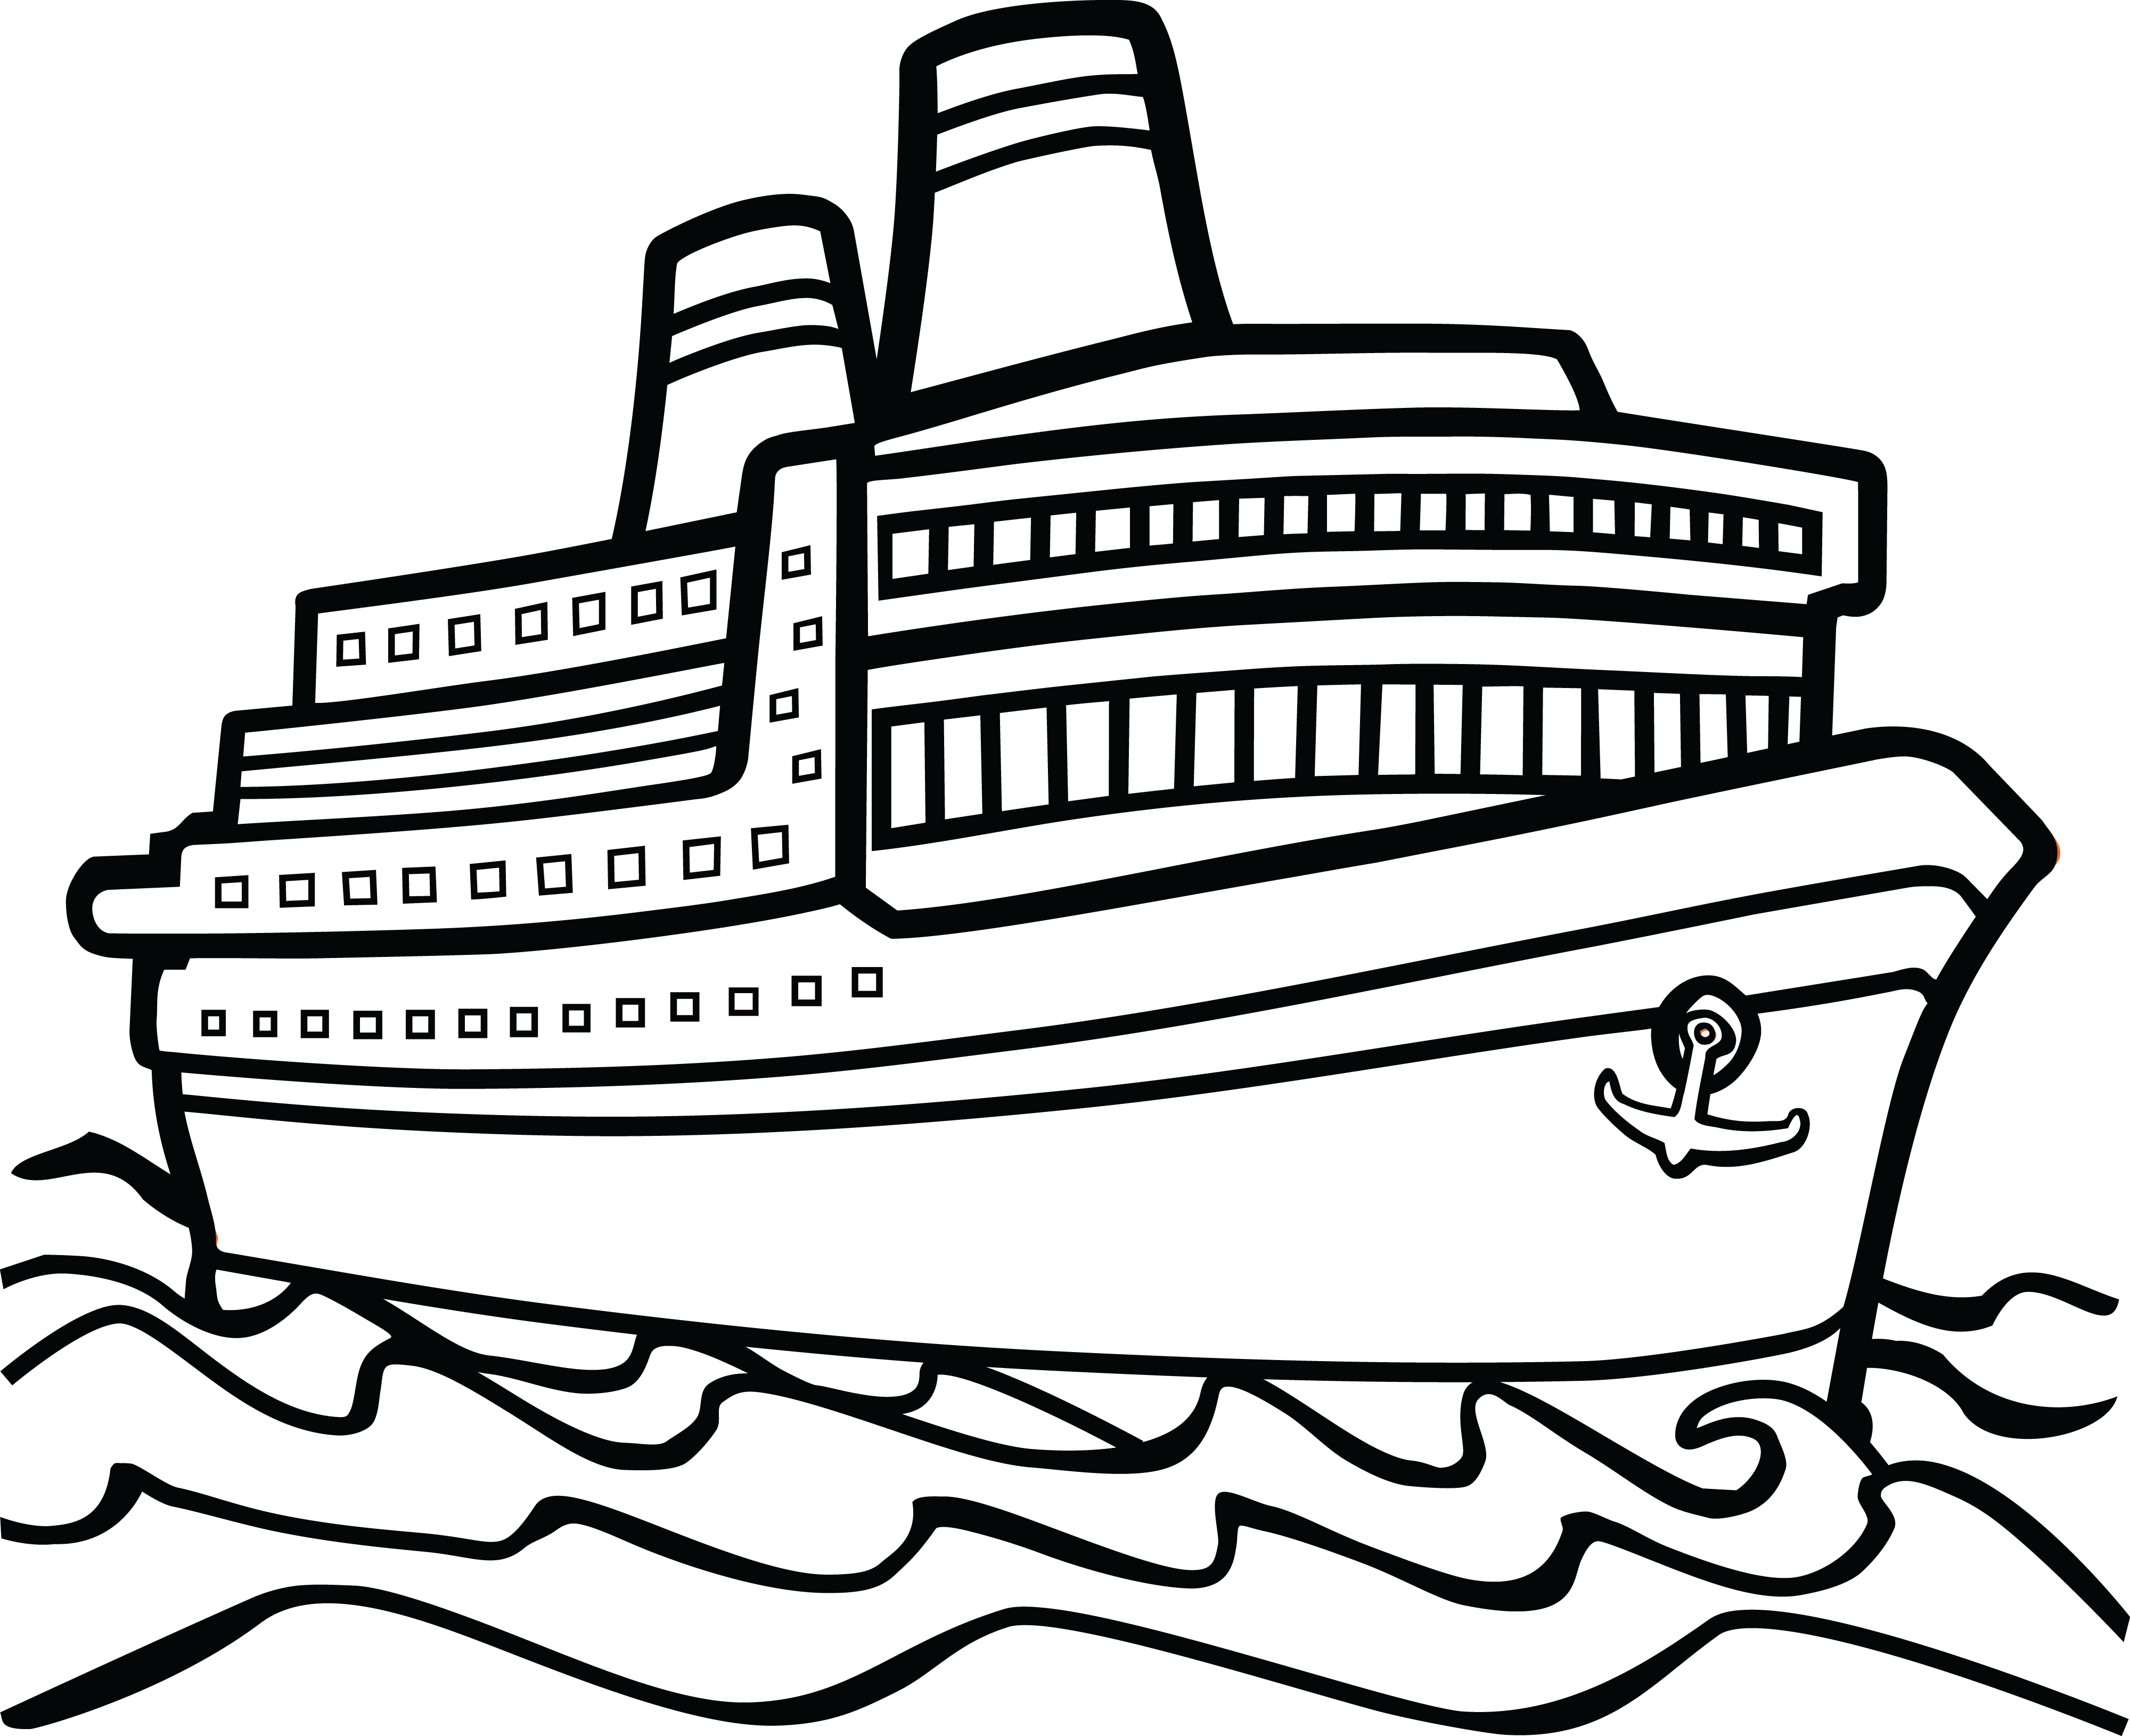 Boat clipart black and white 1 » Clipart Station.